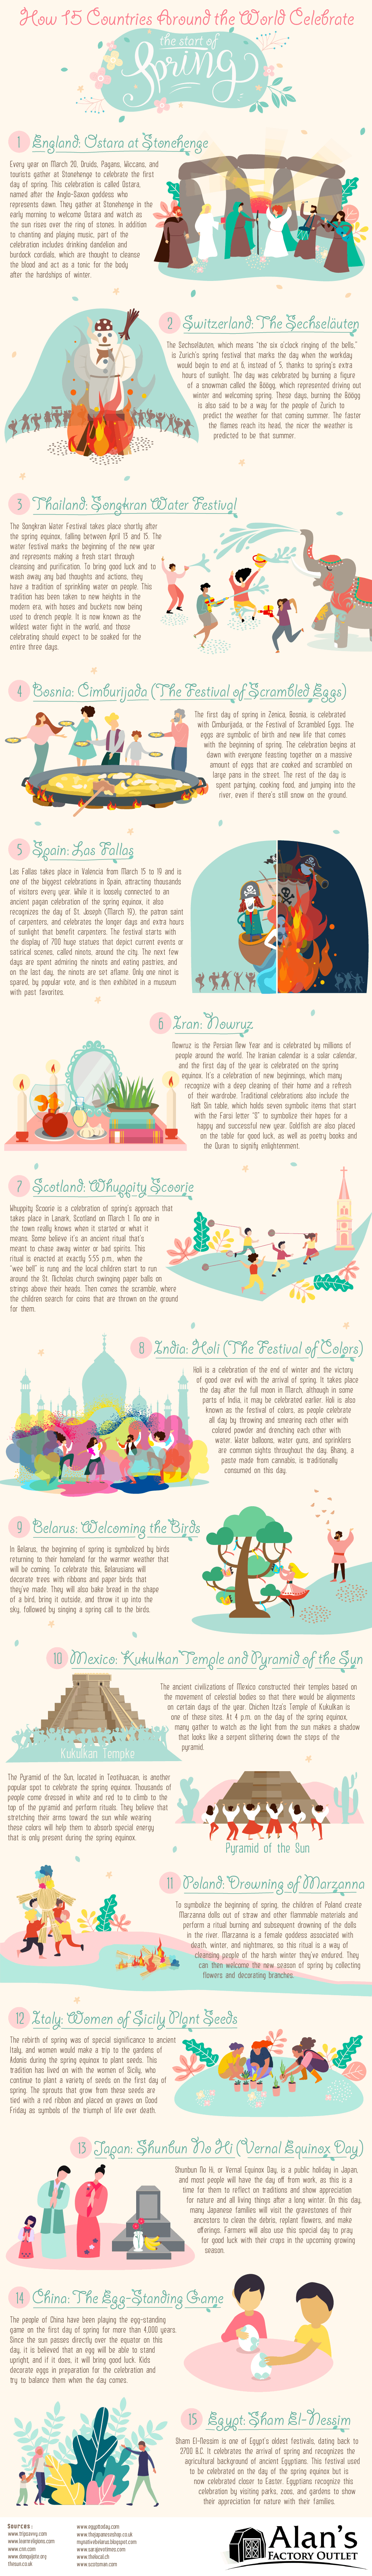 How Different Cultures Around the World Celebrate the Start of Spring